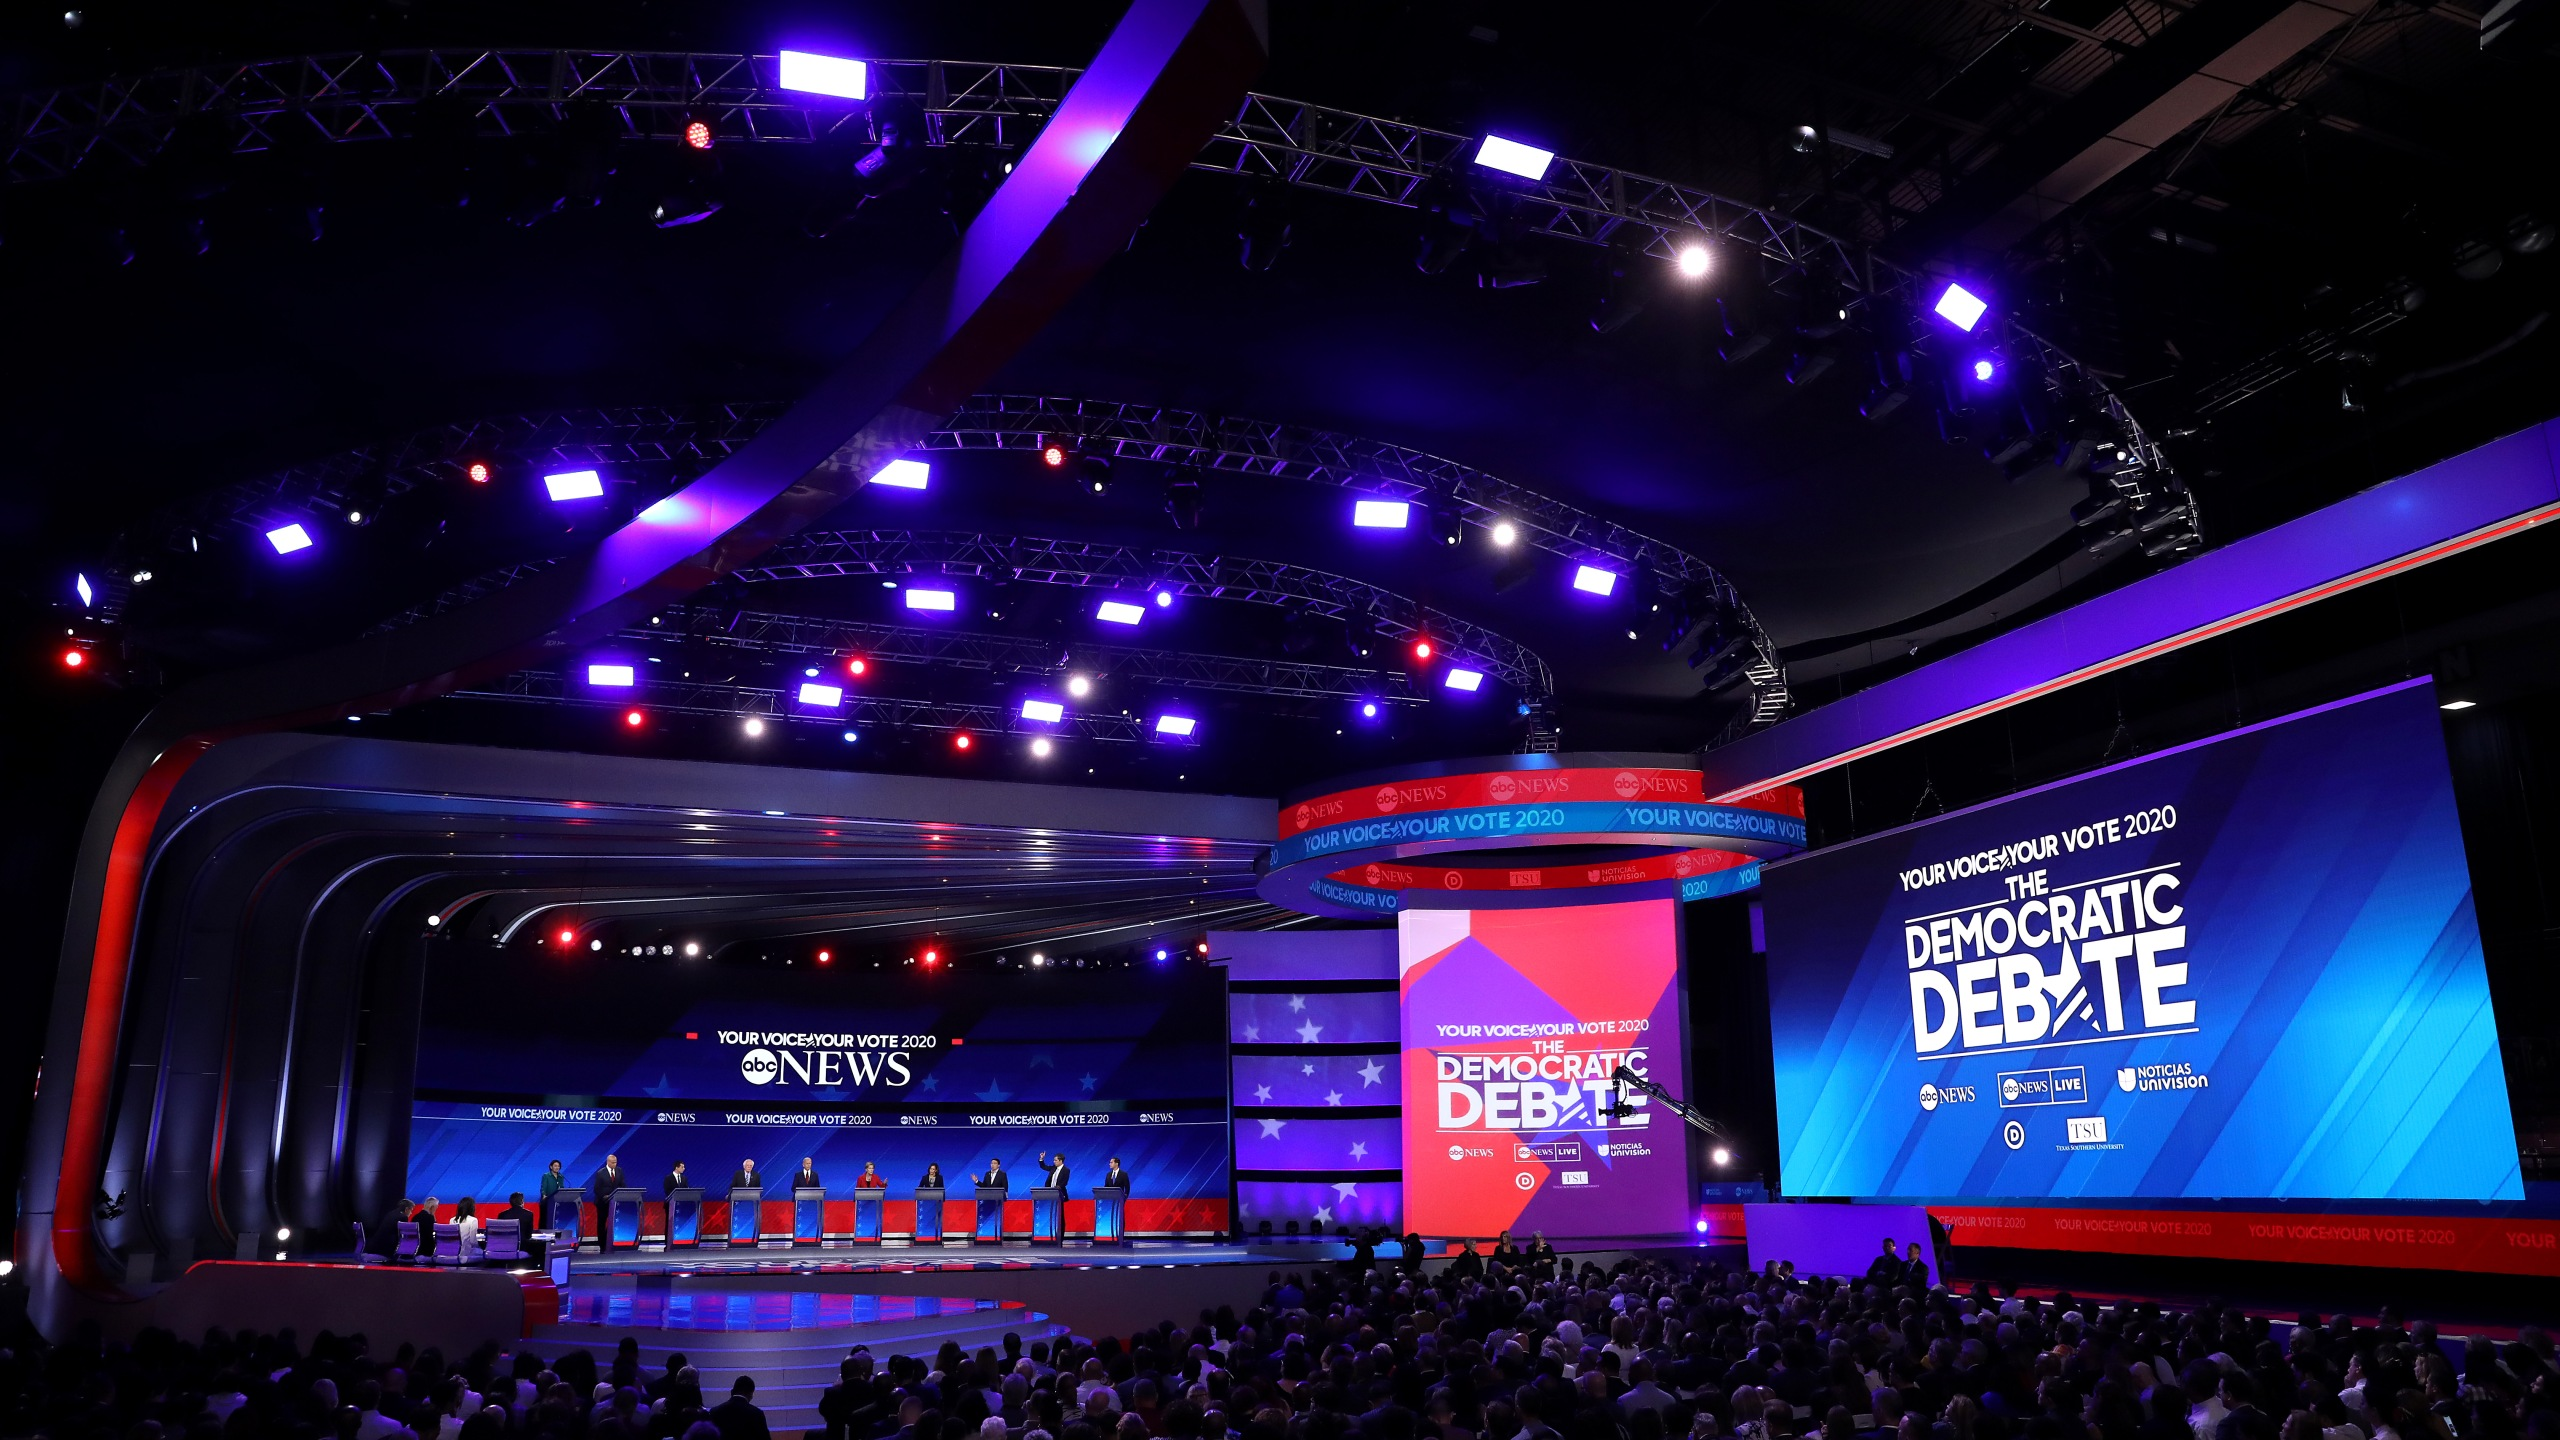 Democratic presidential candidates debate on stage during the Democratic Presidential Debate at Texas Southern University's Health and PE Center in Houston on Sept. 12, 2019. (Credit: Win McNamee/Getty Images)